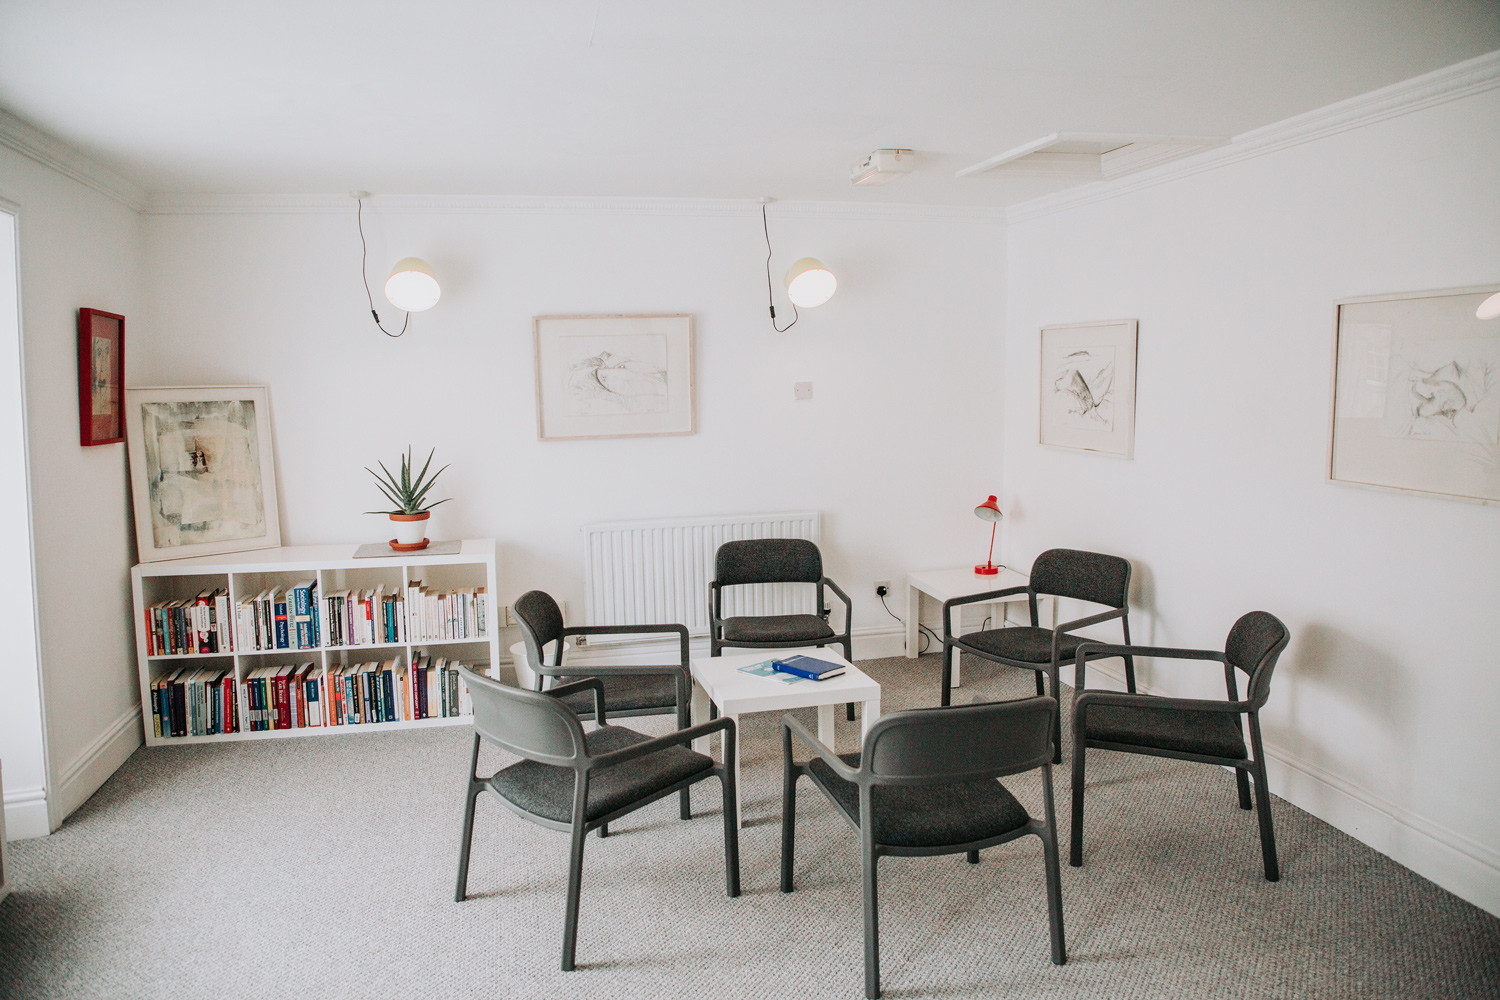 Lifetime-Therapy-A-Space-for-Healing-Truro-Cornwall-Photography-Mos-and-Maw-07-group-room-web.jpg